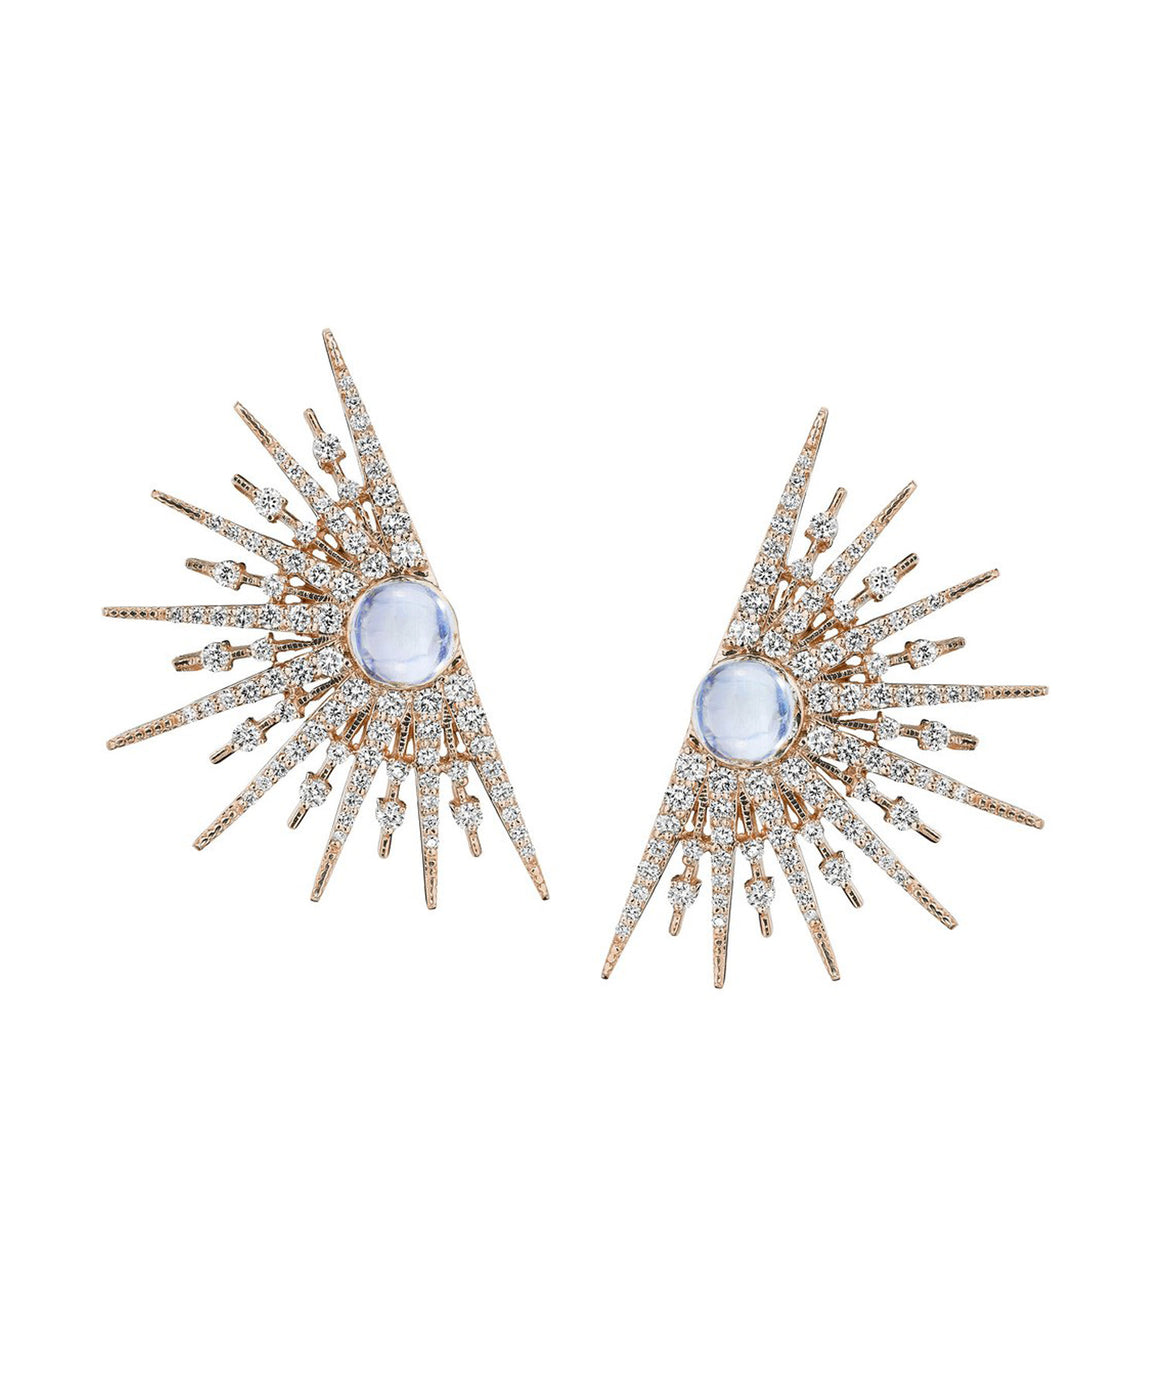 Rose gold starburst earrings with moonstones